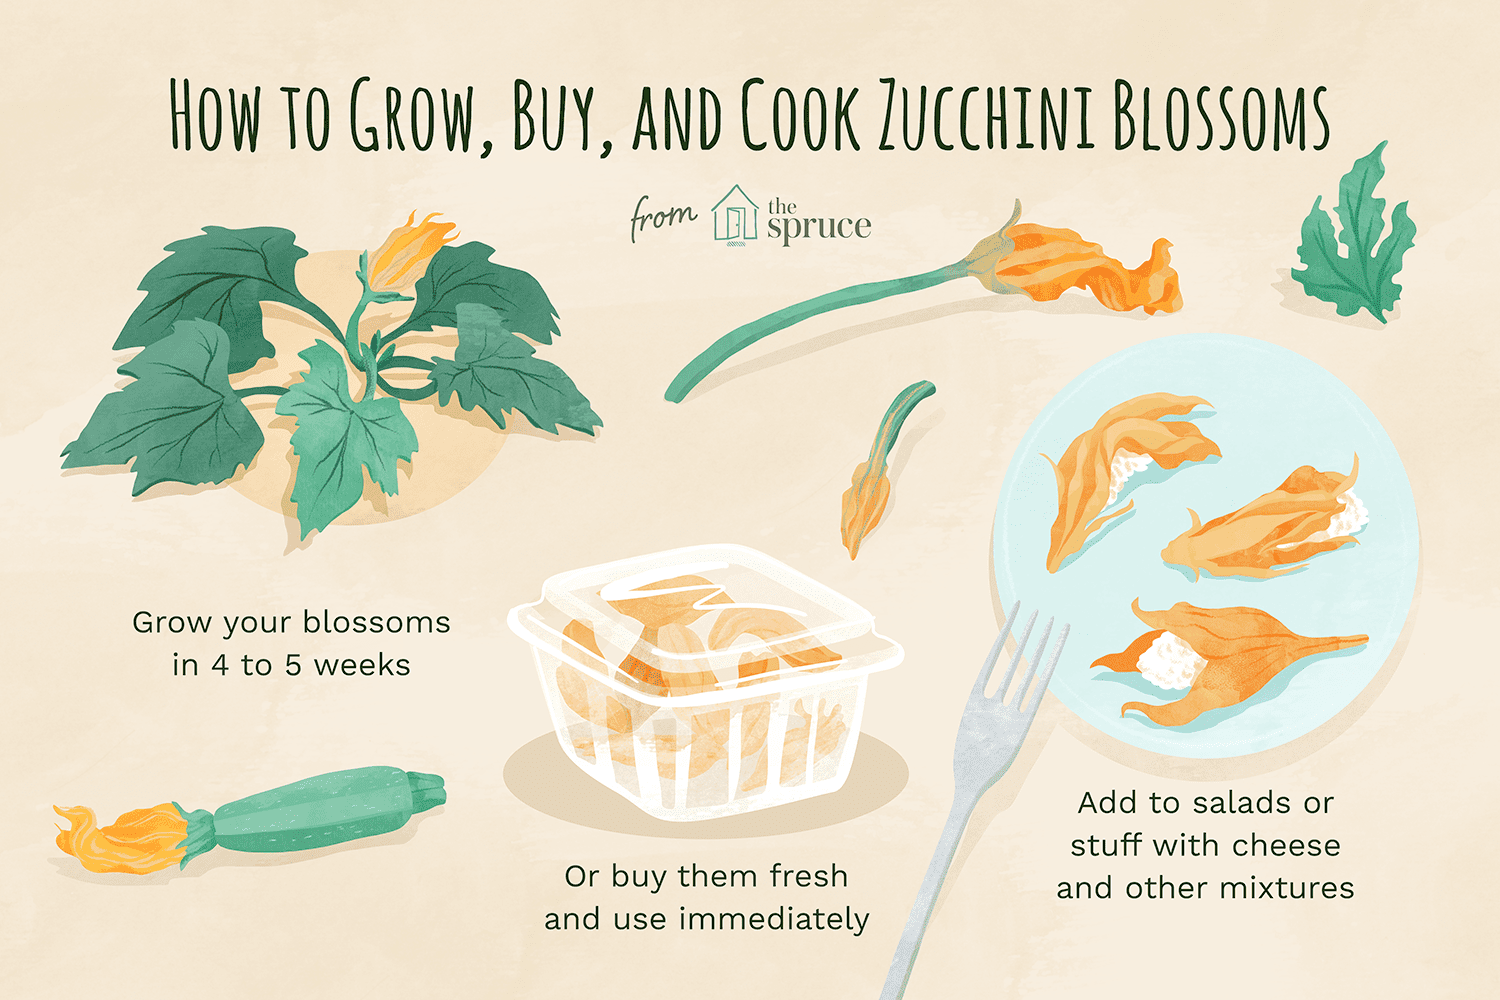 Instructions describing how to grow, buy, and cook zucchini blossoms